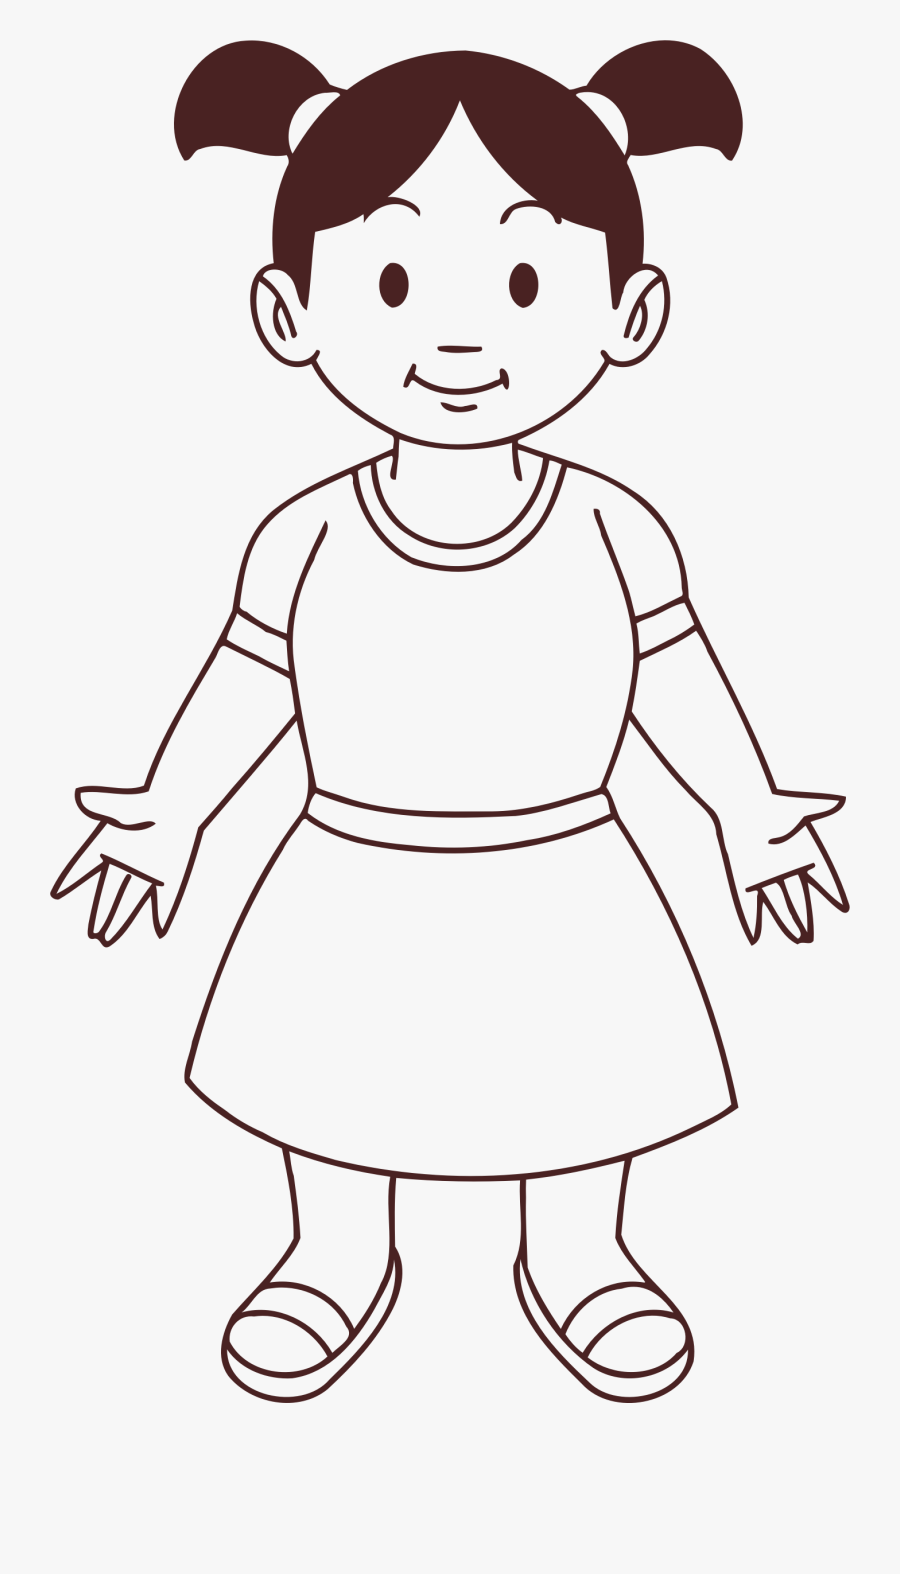 Draw Clipart Kid Draw - Girl Baby Line Drawing, Transparent Clipart